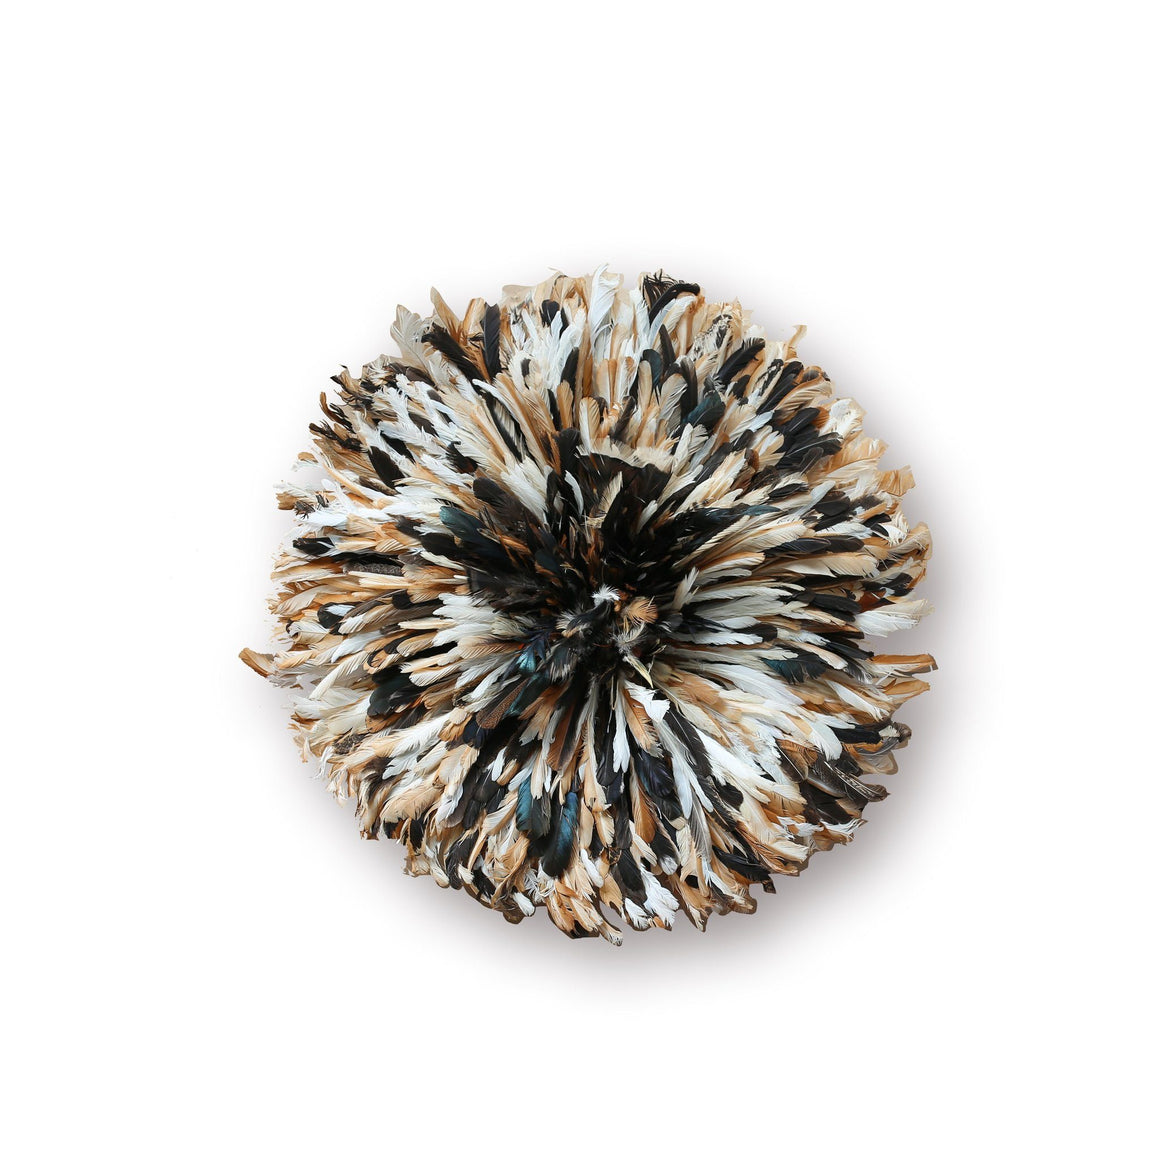 Tigereye Juju Hat - Canary Lane - Curated Textiles